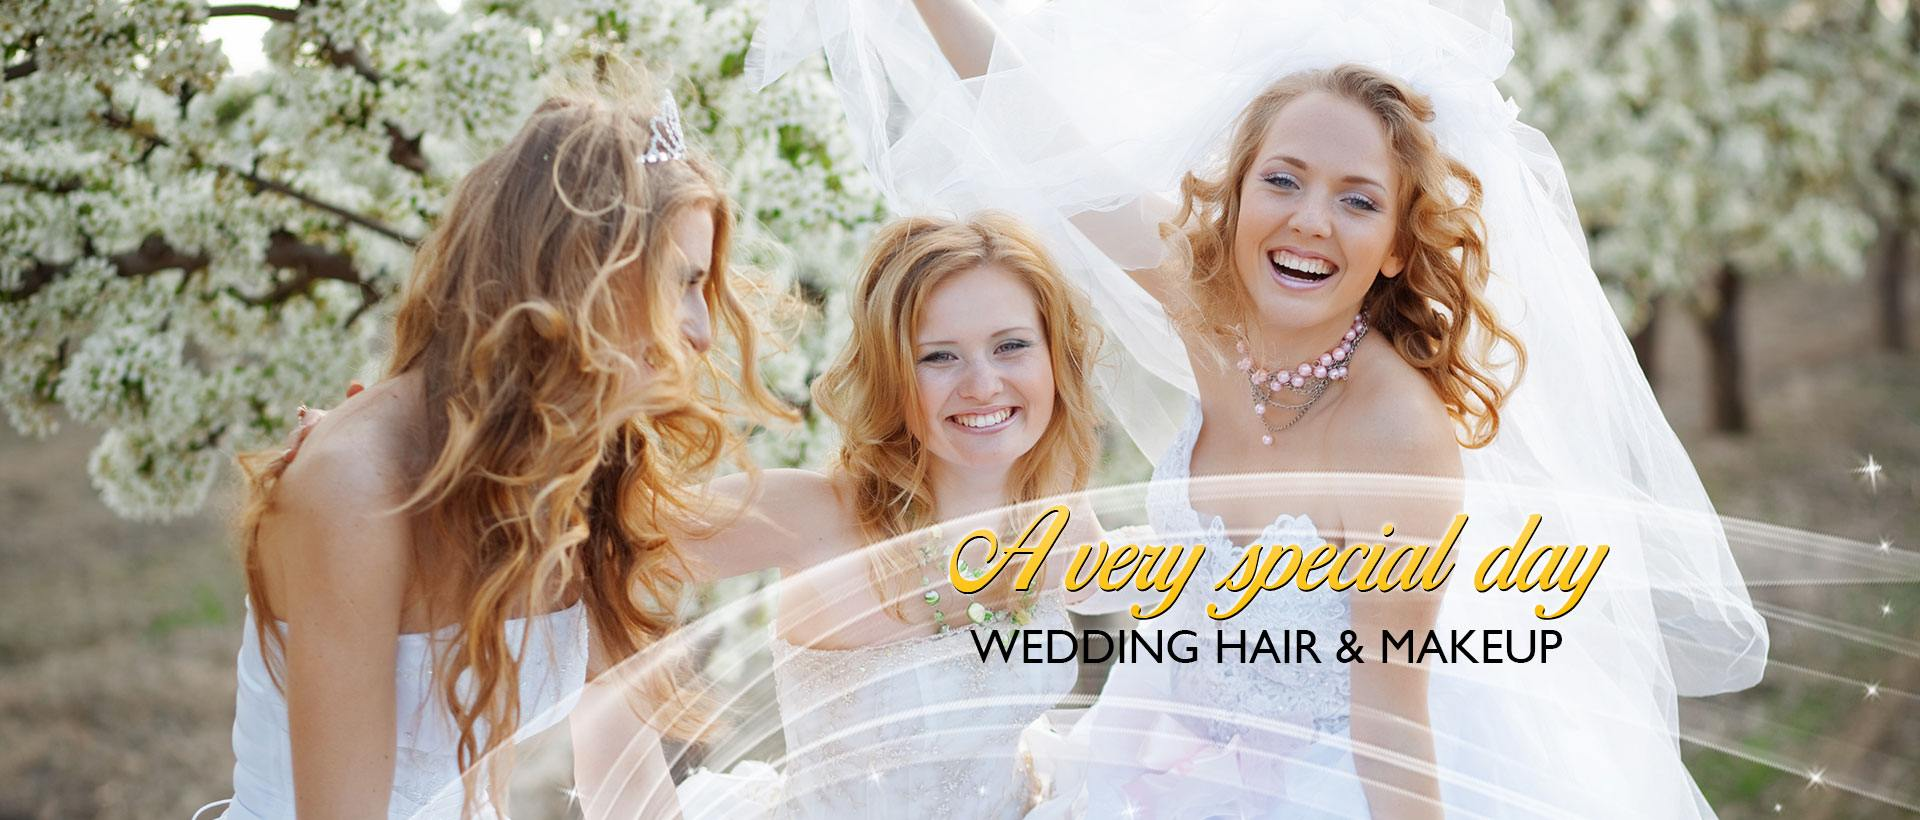 Mildred Emannuelli Hairstylist Hair Color Styles Near Me Wedding Makeup Elegant Orlando, Salon Hair Professional Quinceañeras